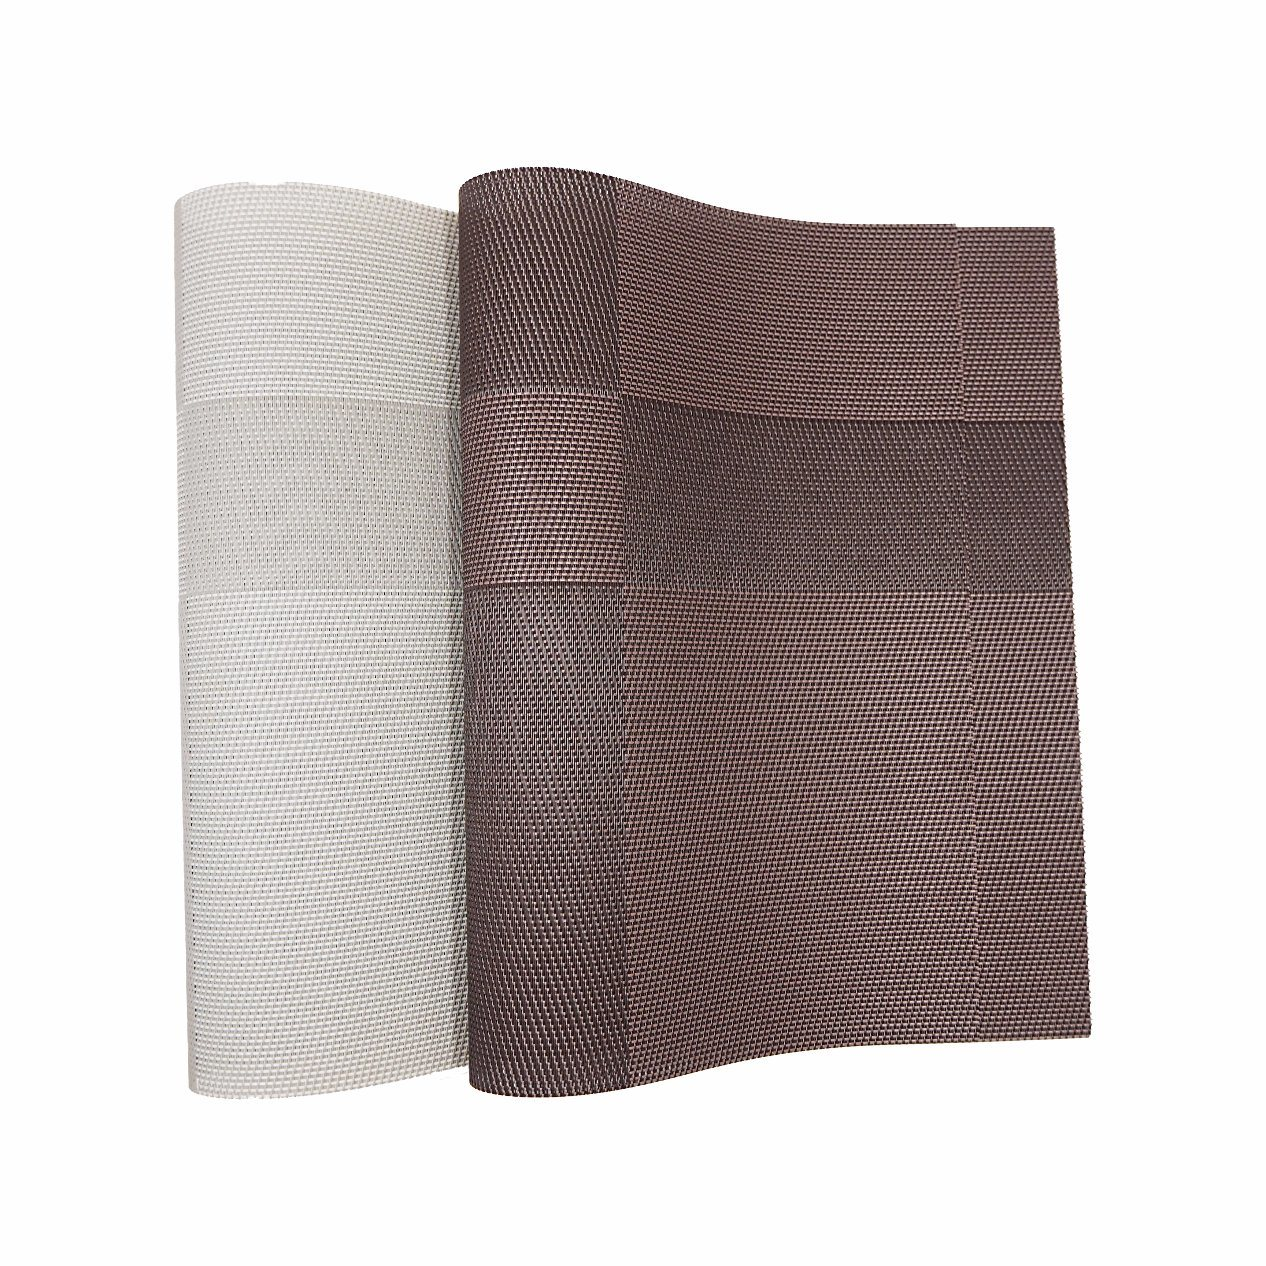 Jacquard Weave Insulation Anti-Skid PVC Woven Mat for Tabletop